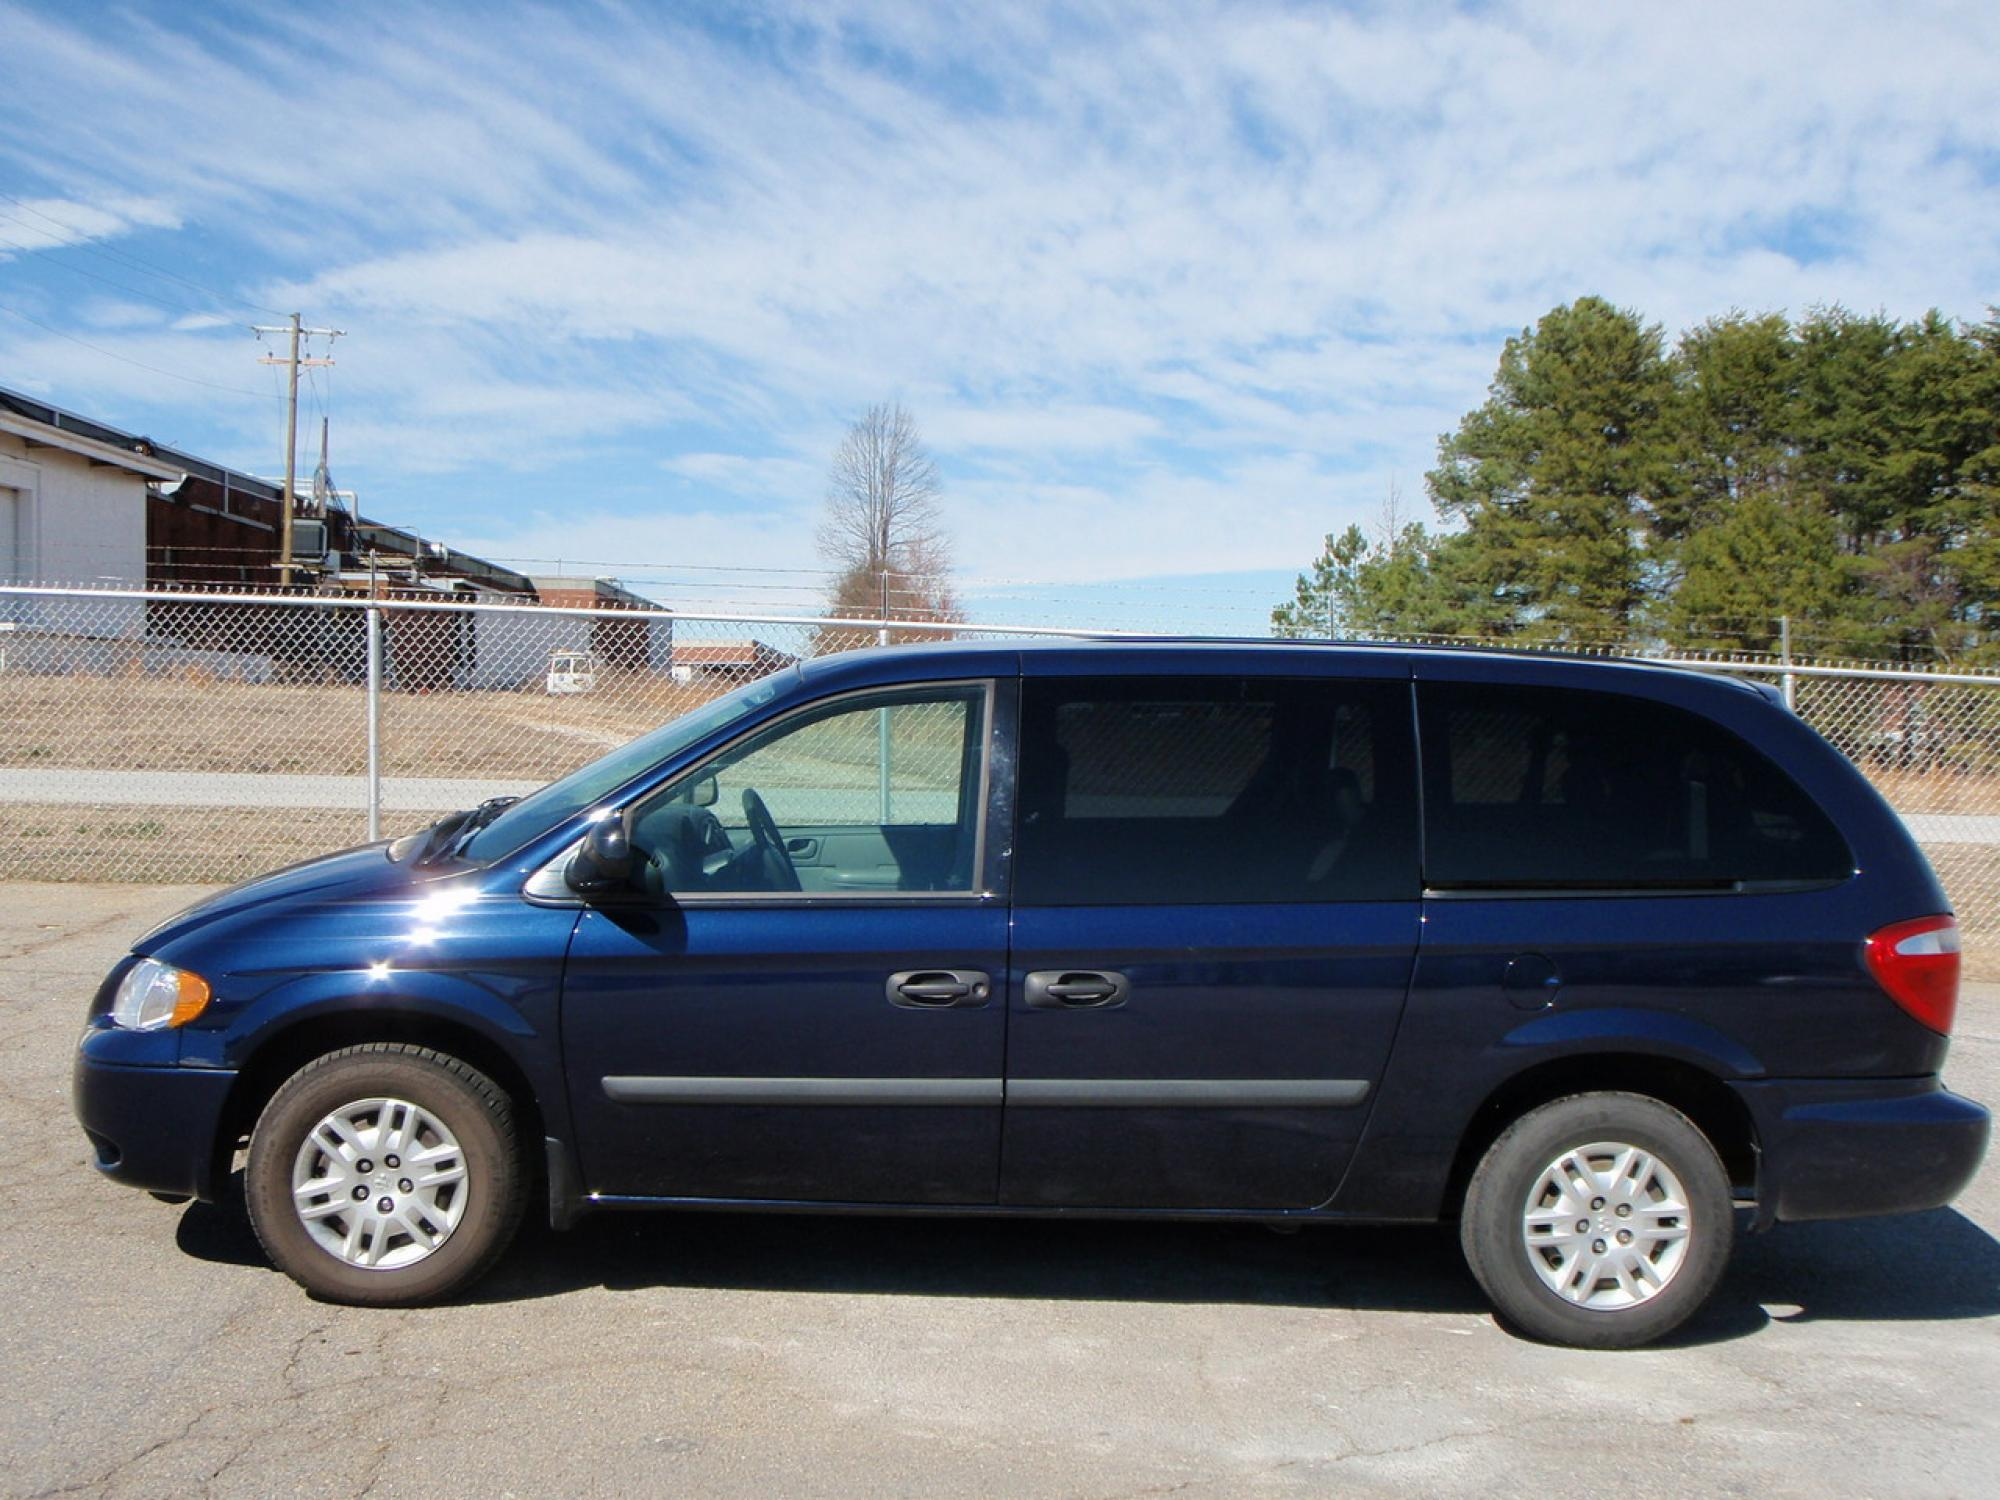 2005 Dodge Grand Caravan SE  4dr Mini-van Passenger Blue Gray 33L OHV SMPI V6 engine4-speed a